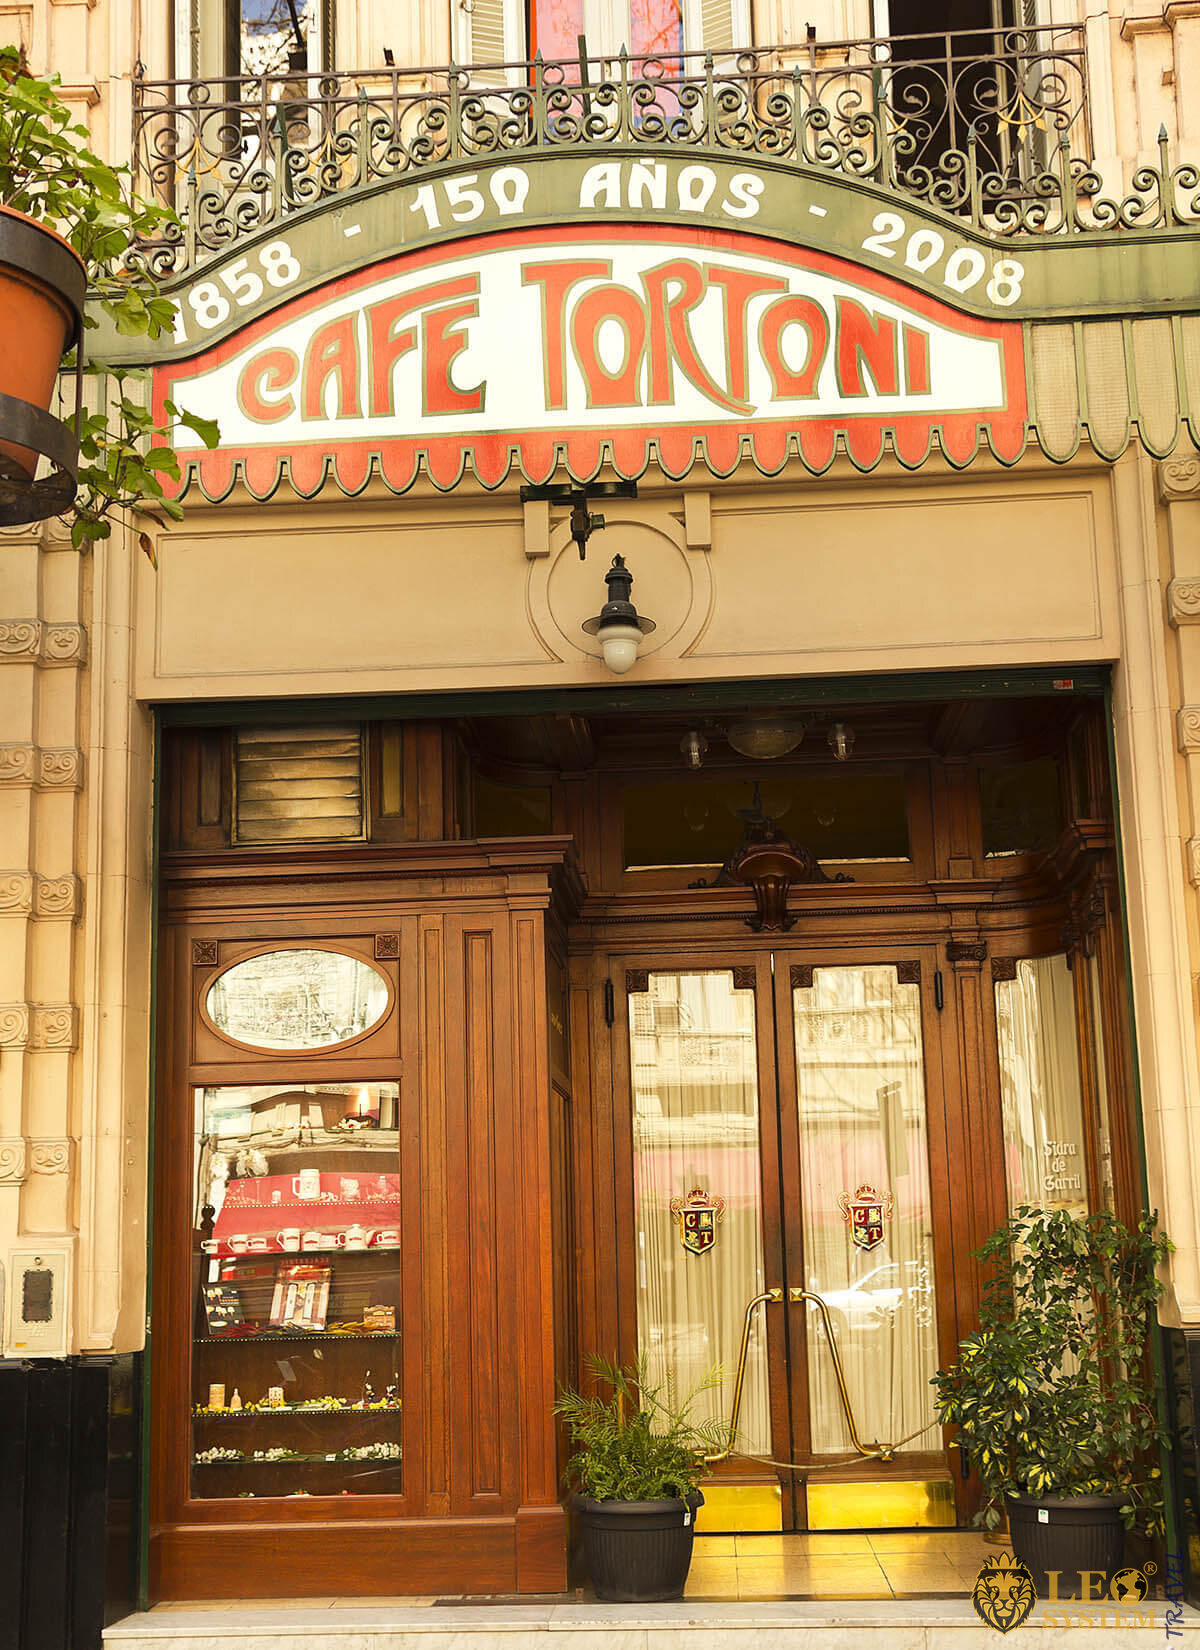 Café Tortoni - well-known cafe in Buenos Aires